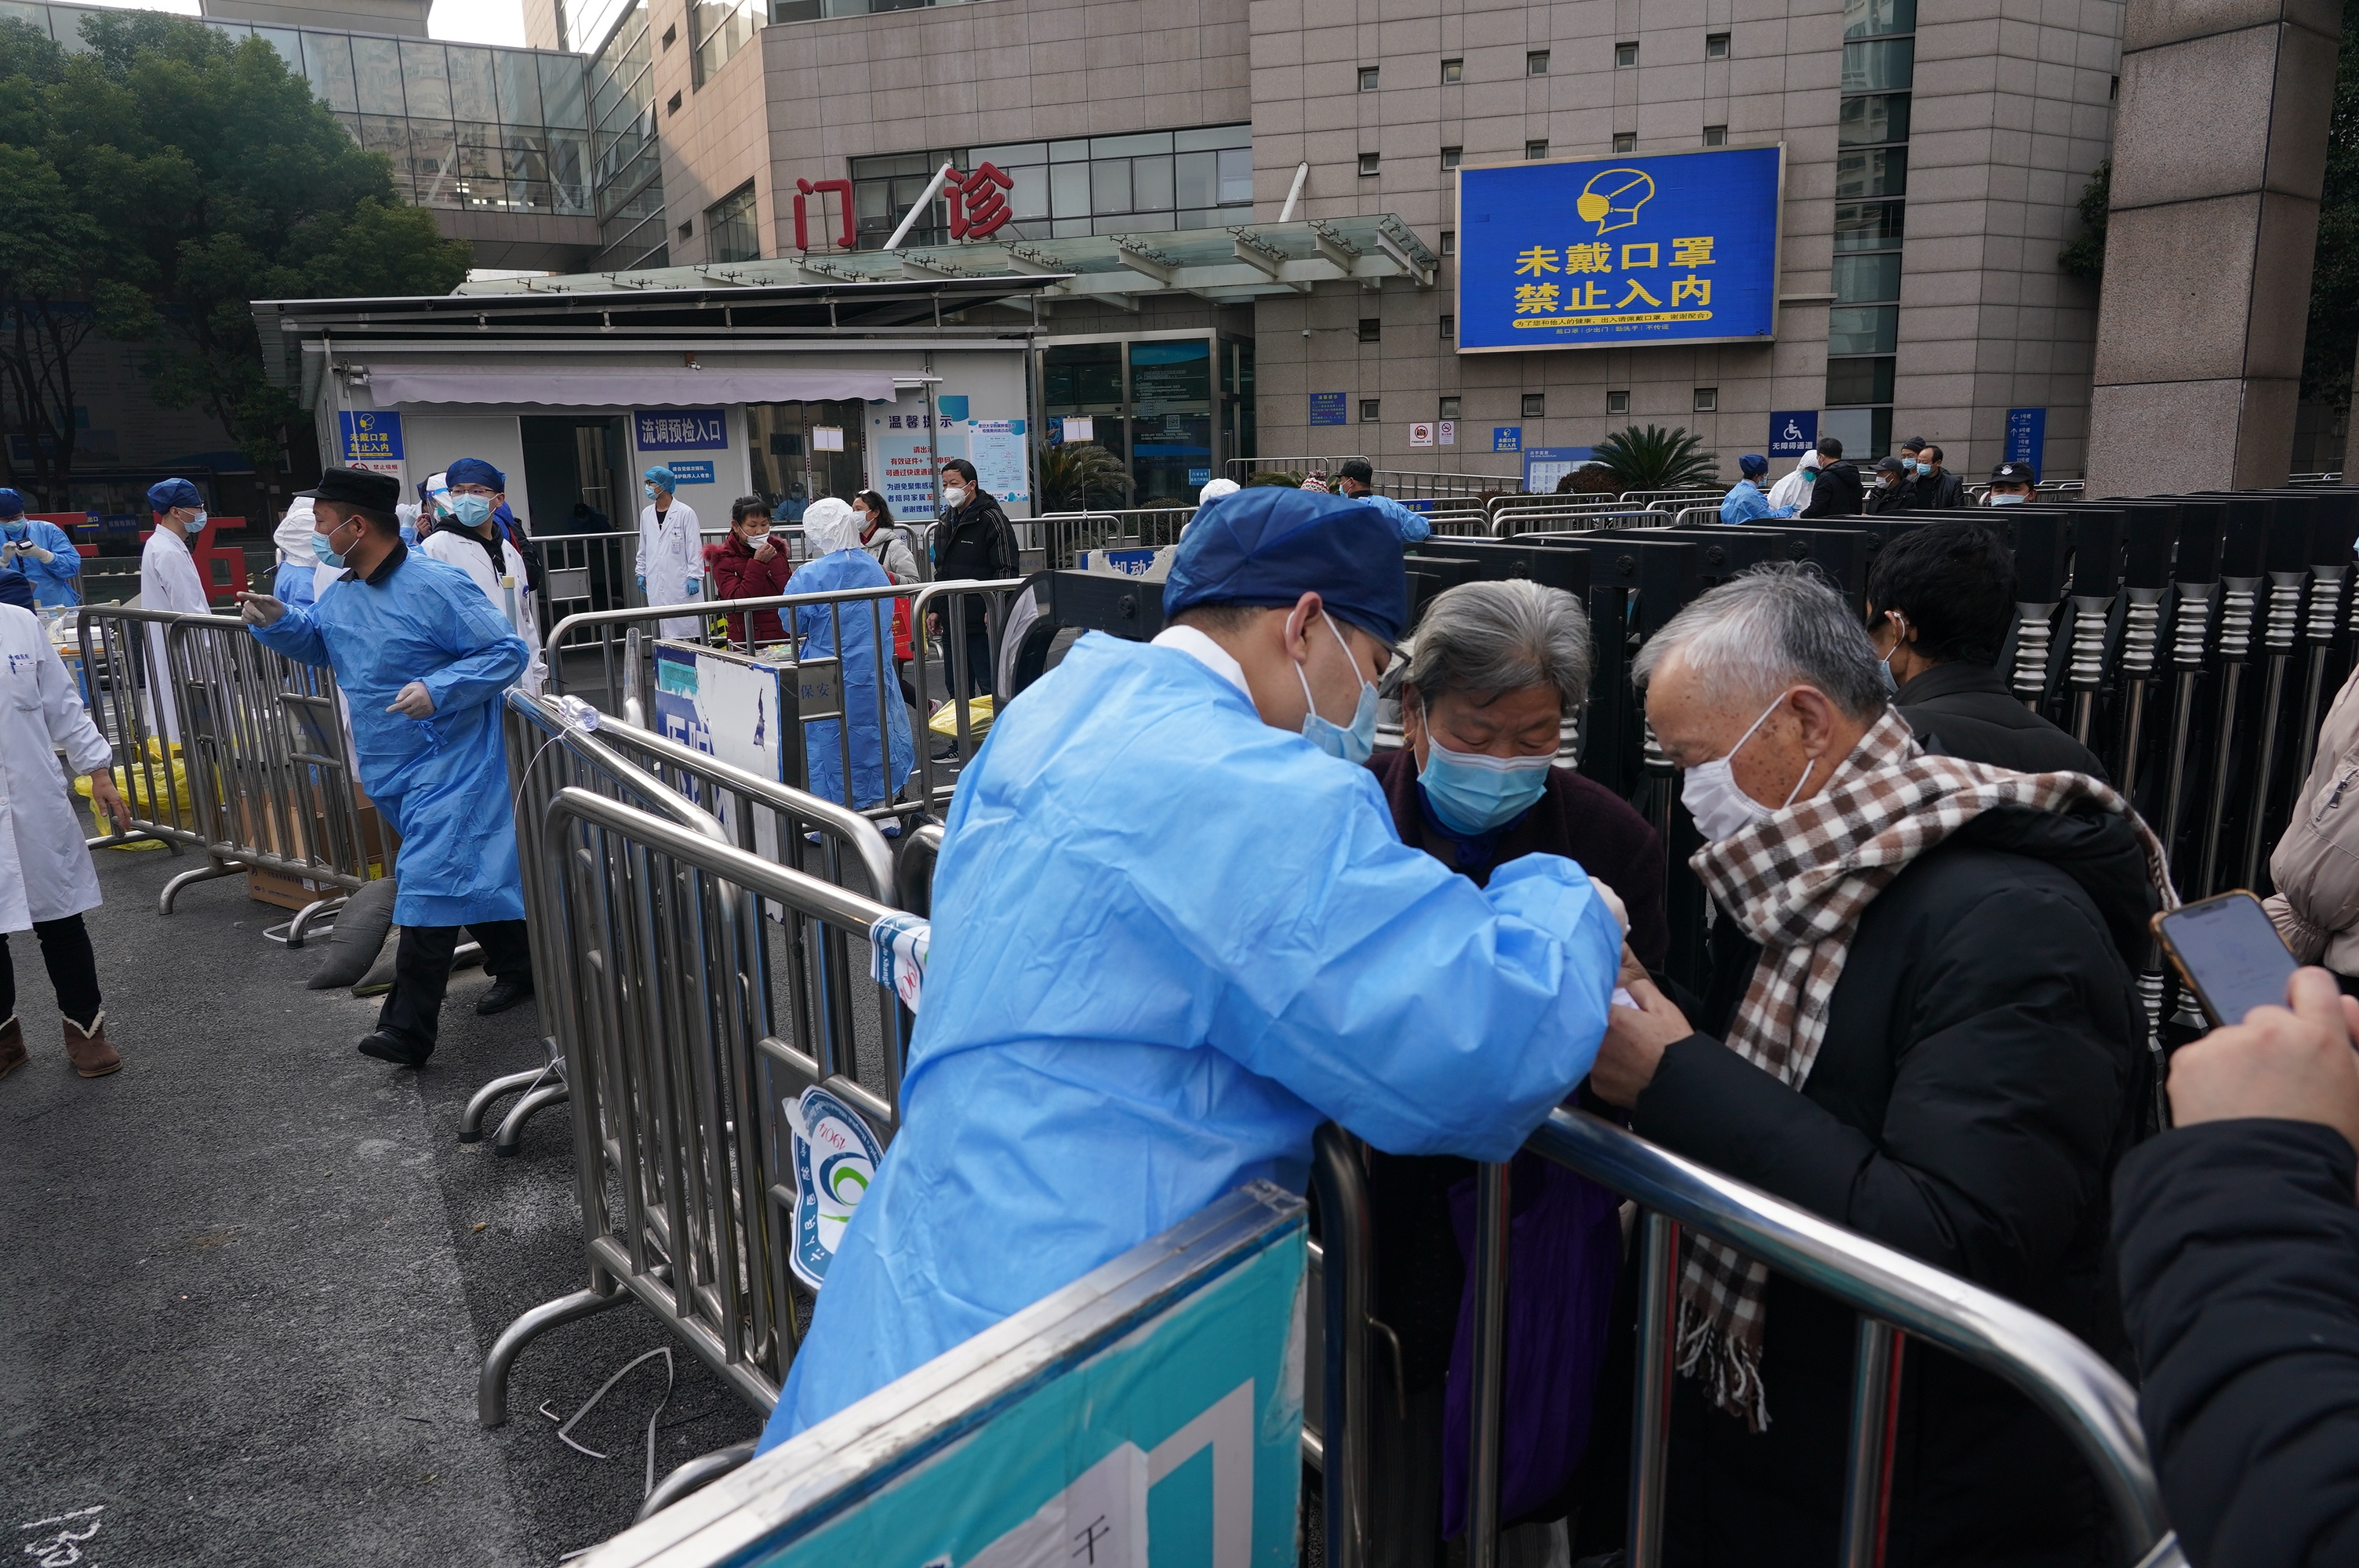 Two Shanghai hospitals suspend services after new cases reported